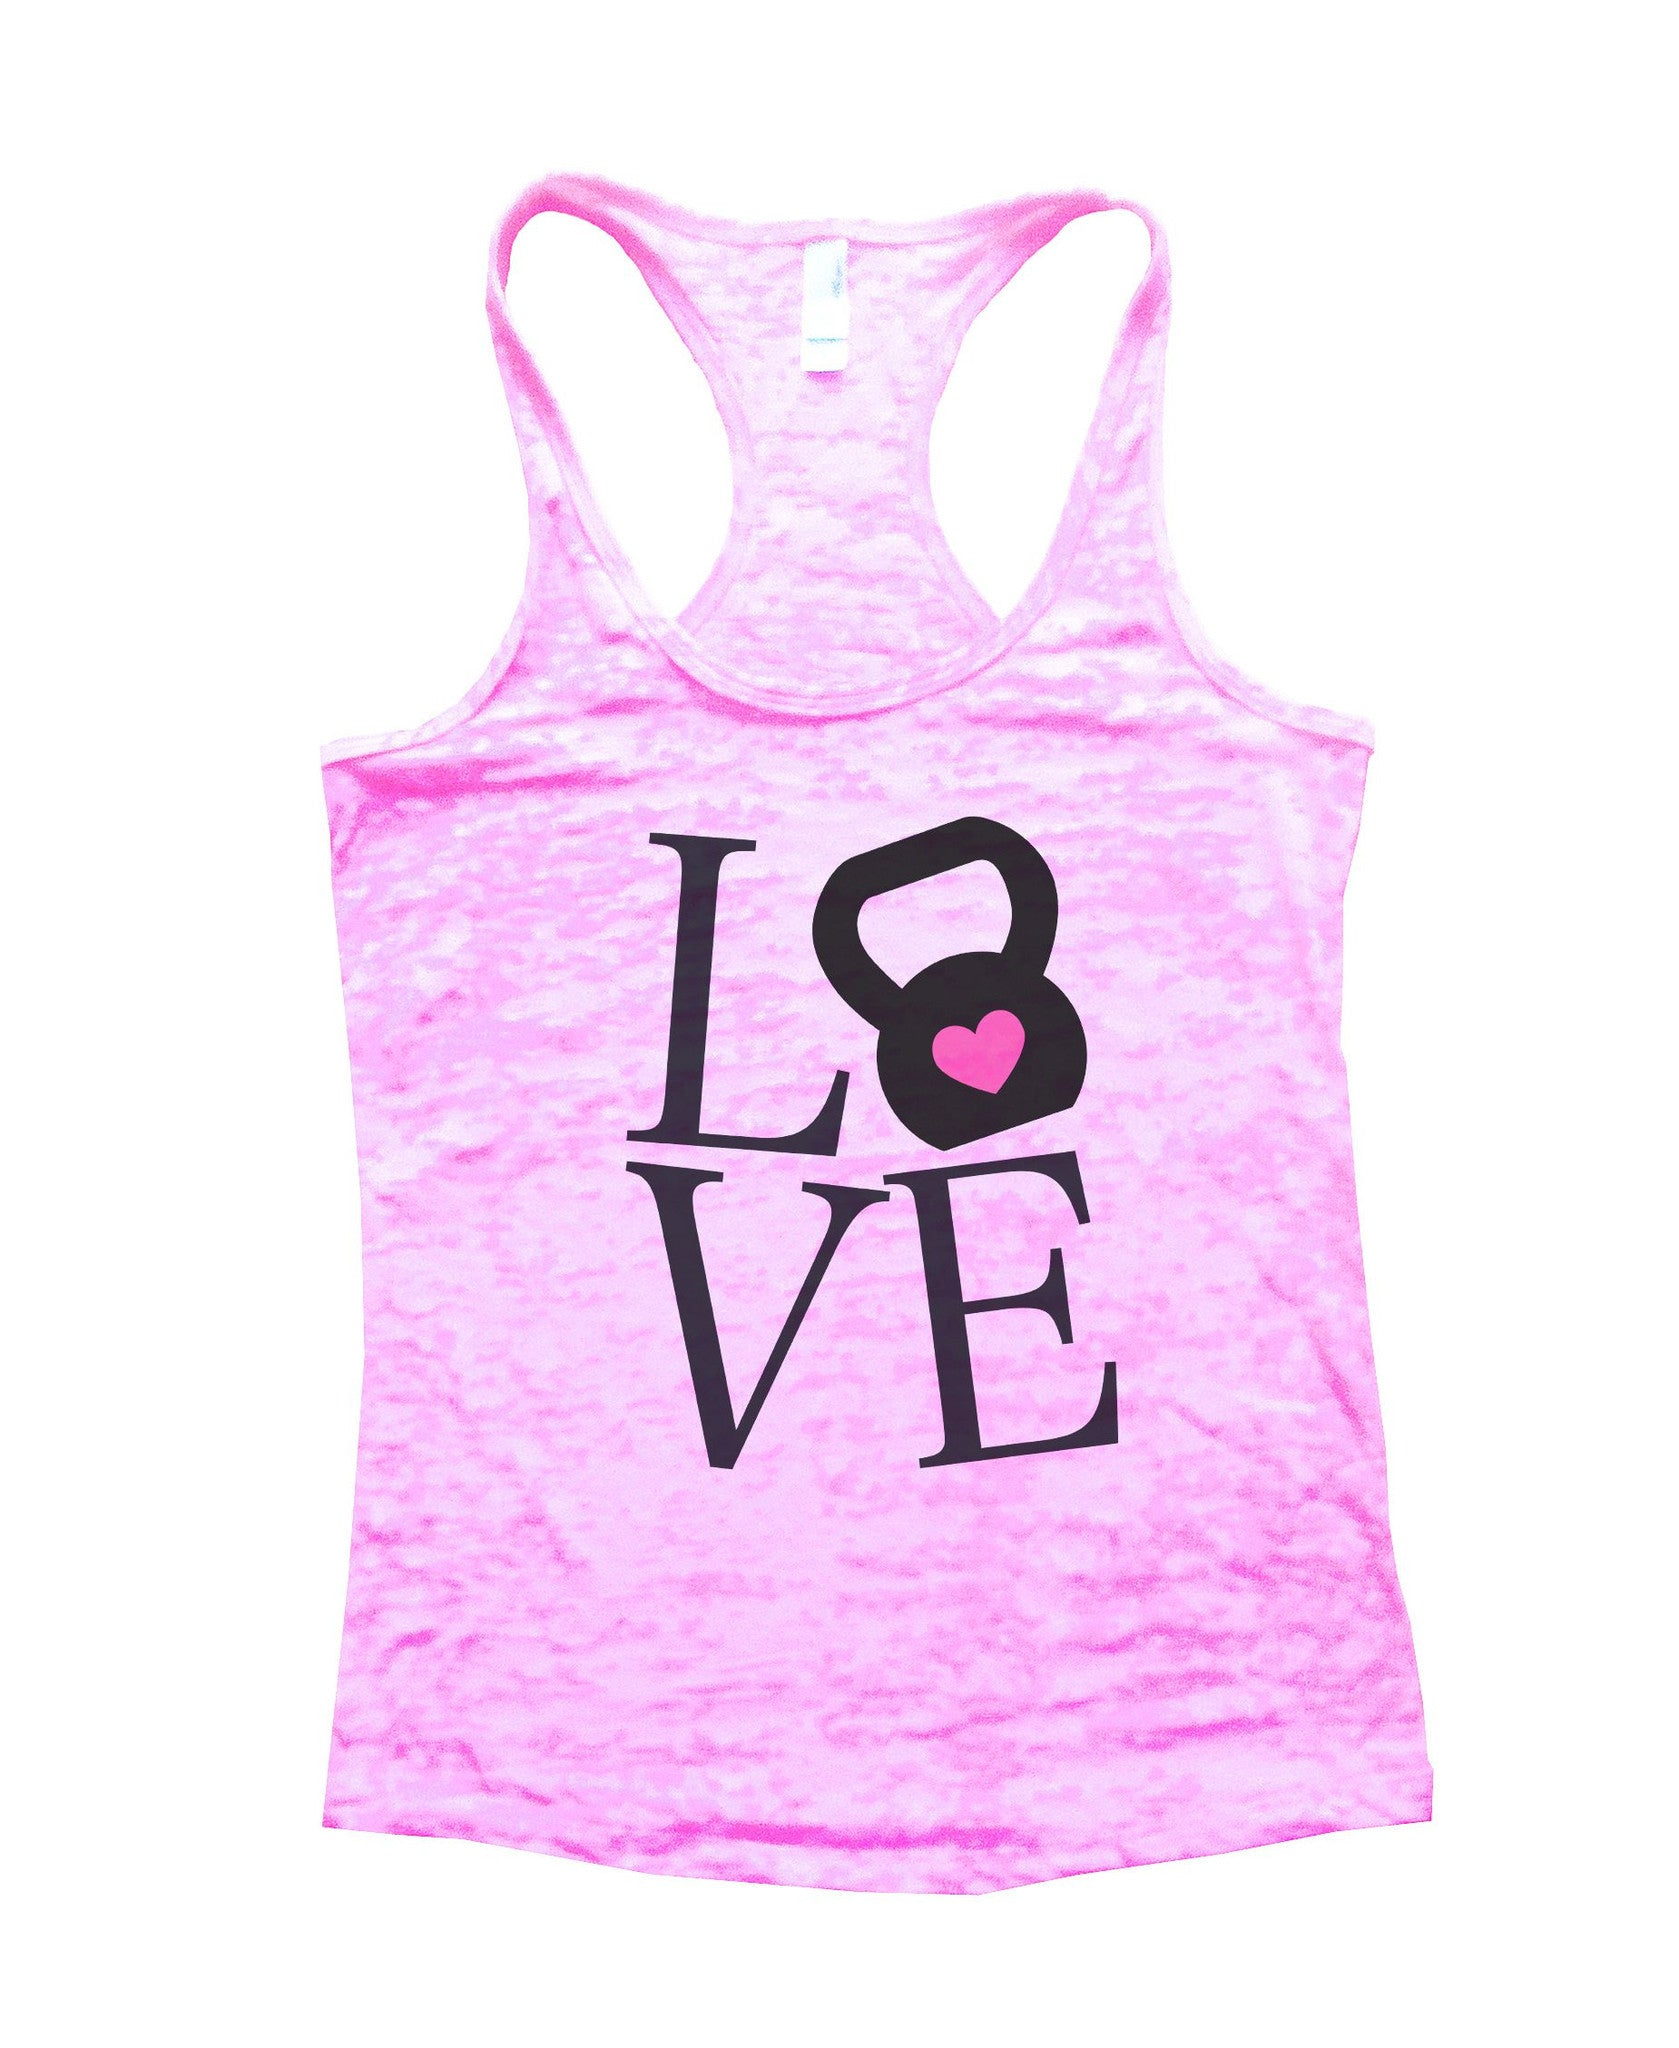 Love Burnout Tank Top By BurnoutTankTops.com - 727 - Funny Shirts Tank Tops Burnouts and Triblends  - 1